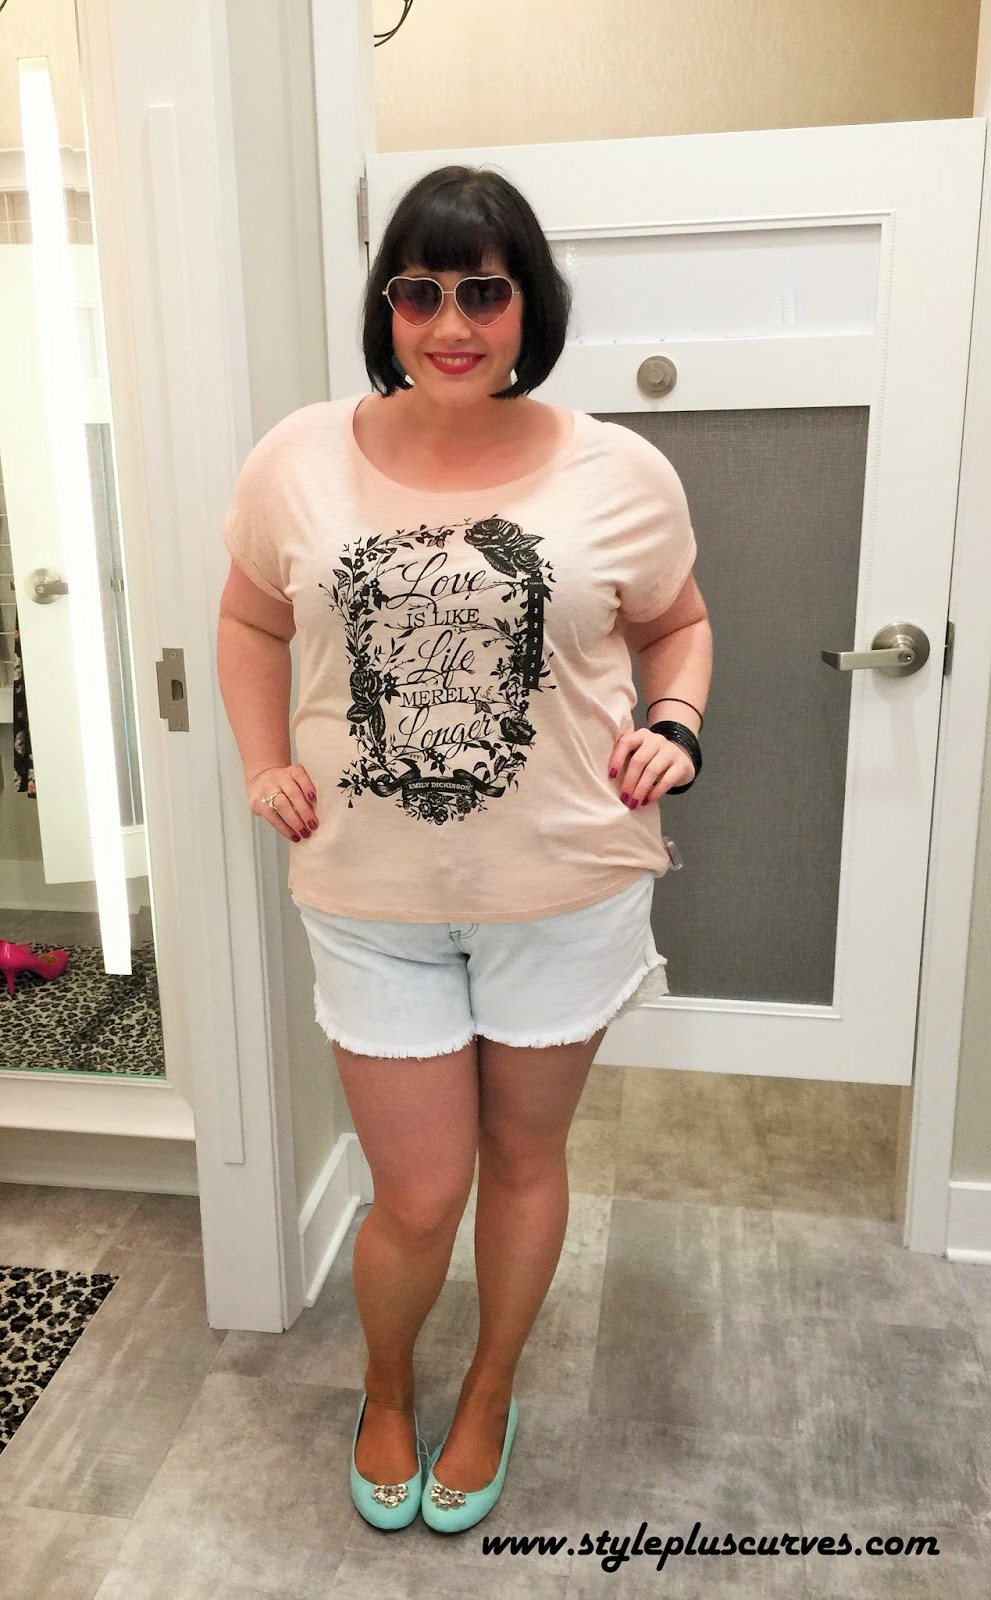 Amber from Style Plus Curves in a casual tshirt and jean shorts at the Torrid in Chicago